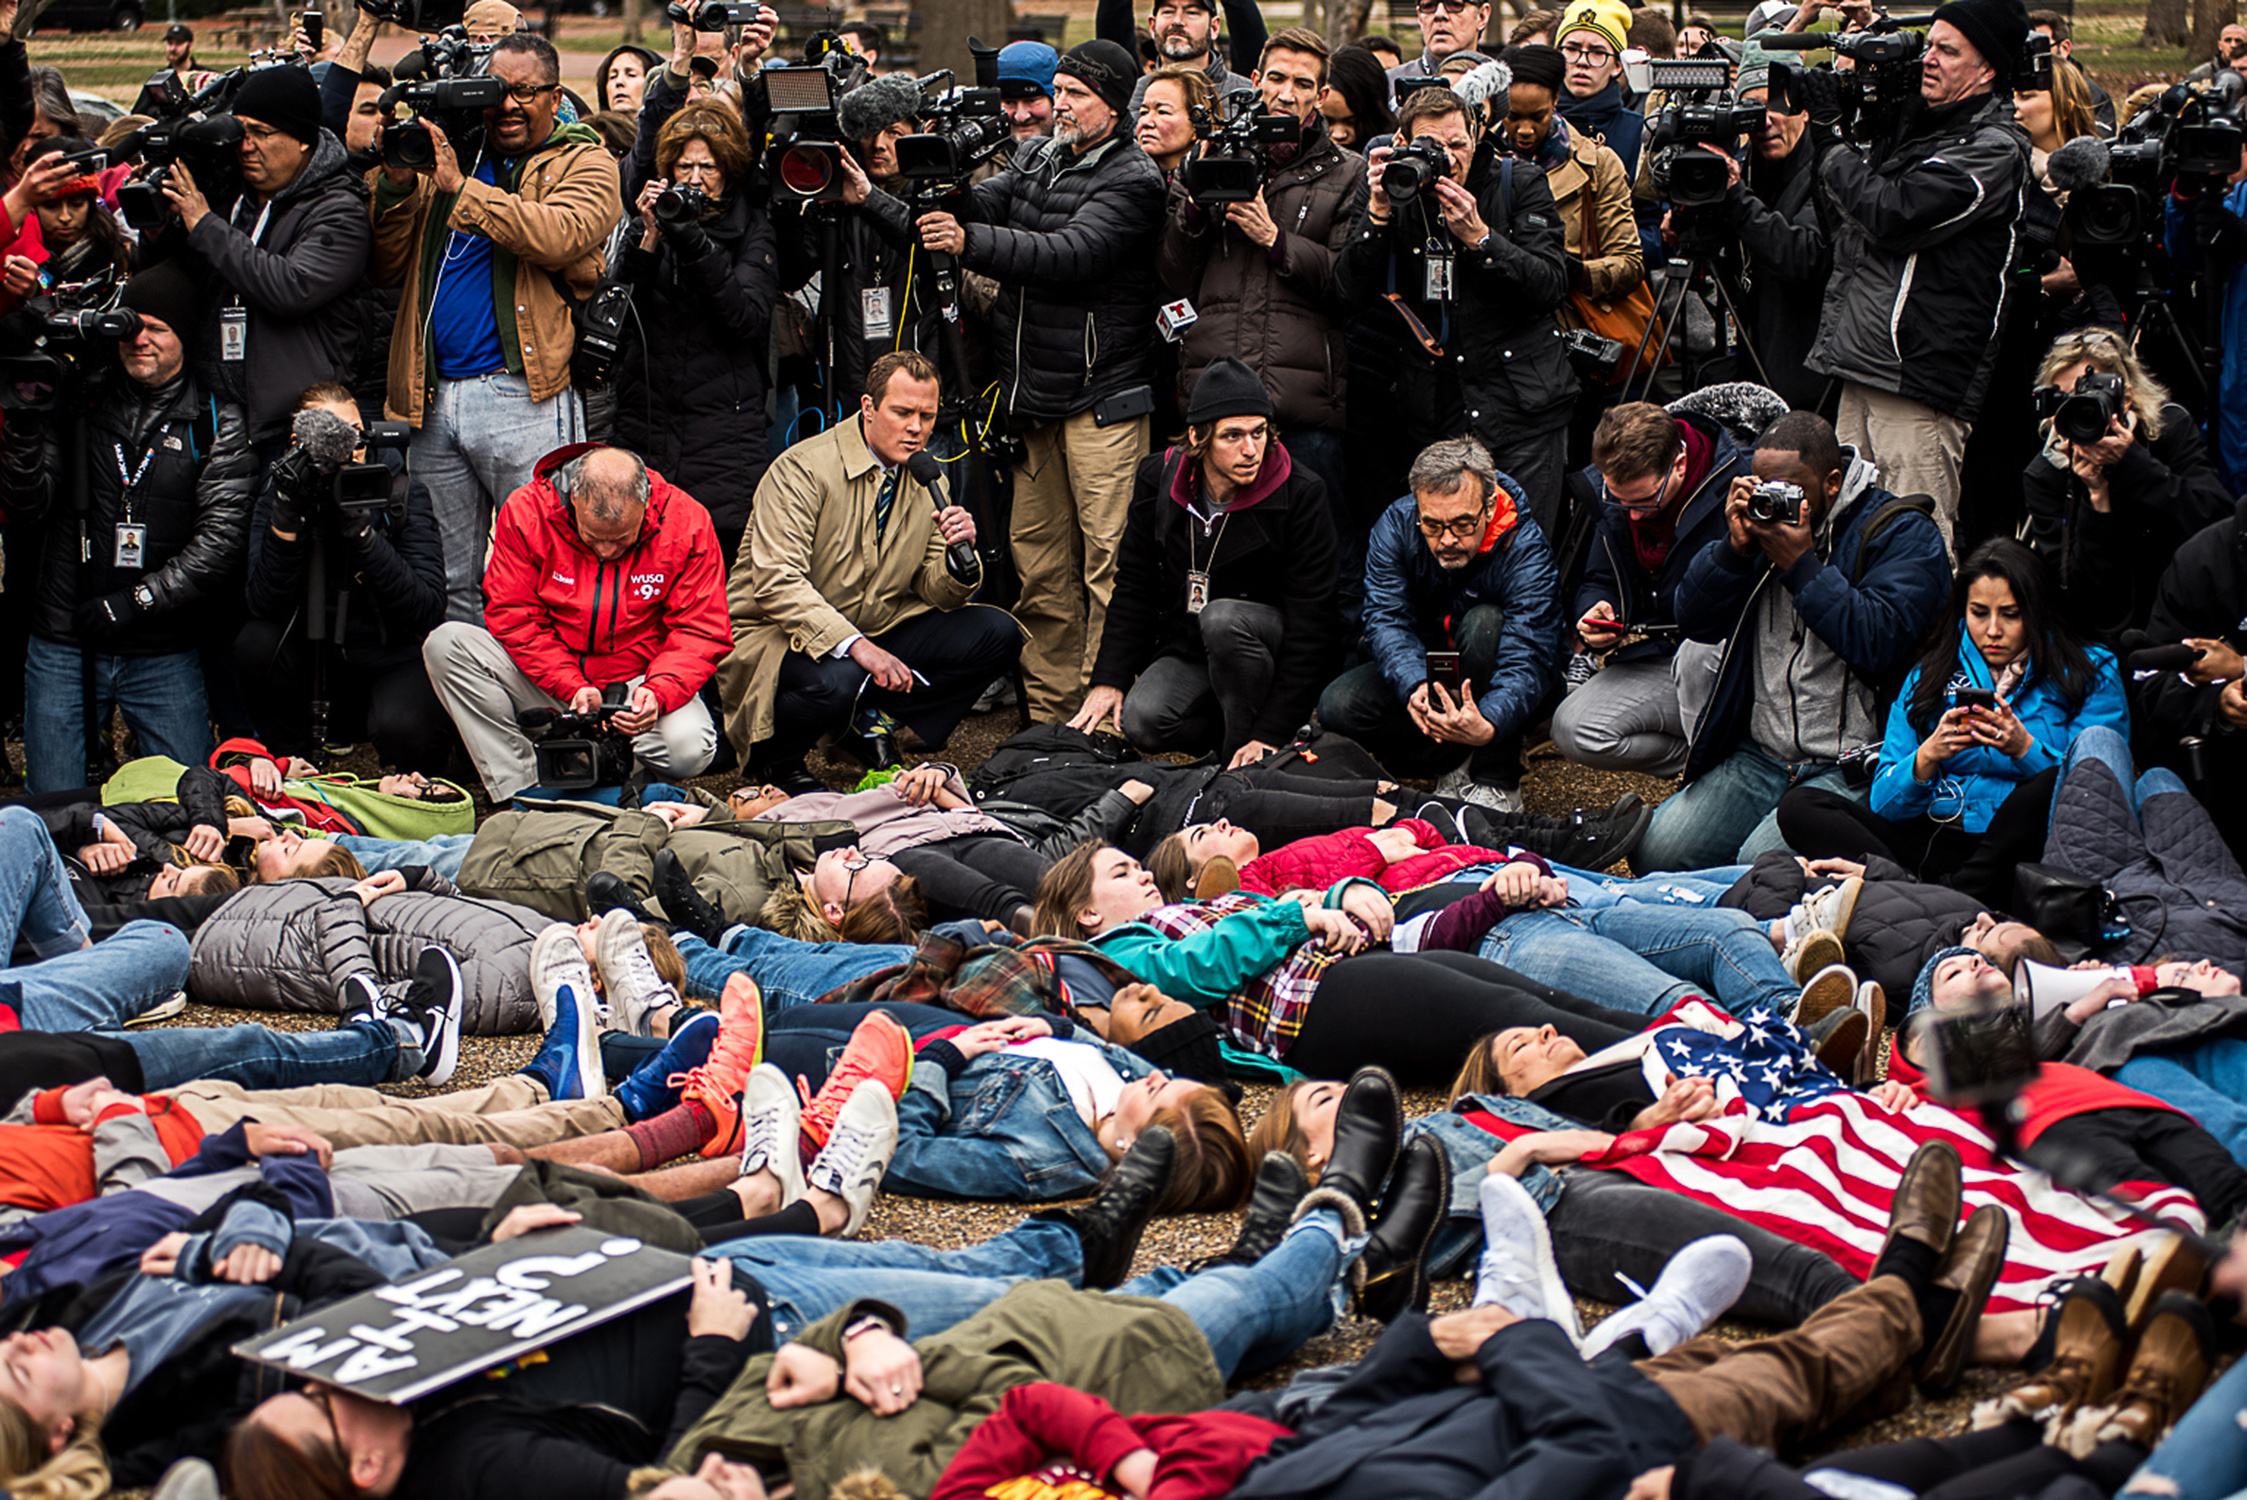 Press and Protest by Michael Landsman, Gun reform protest outside the White House on February 19, 2018